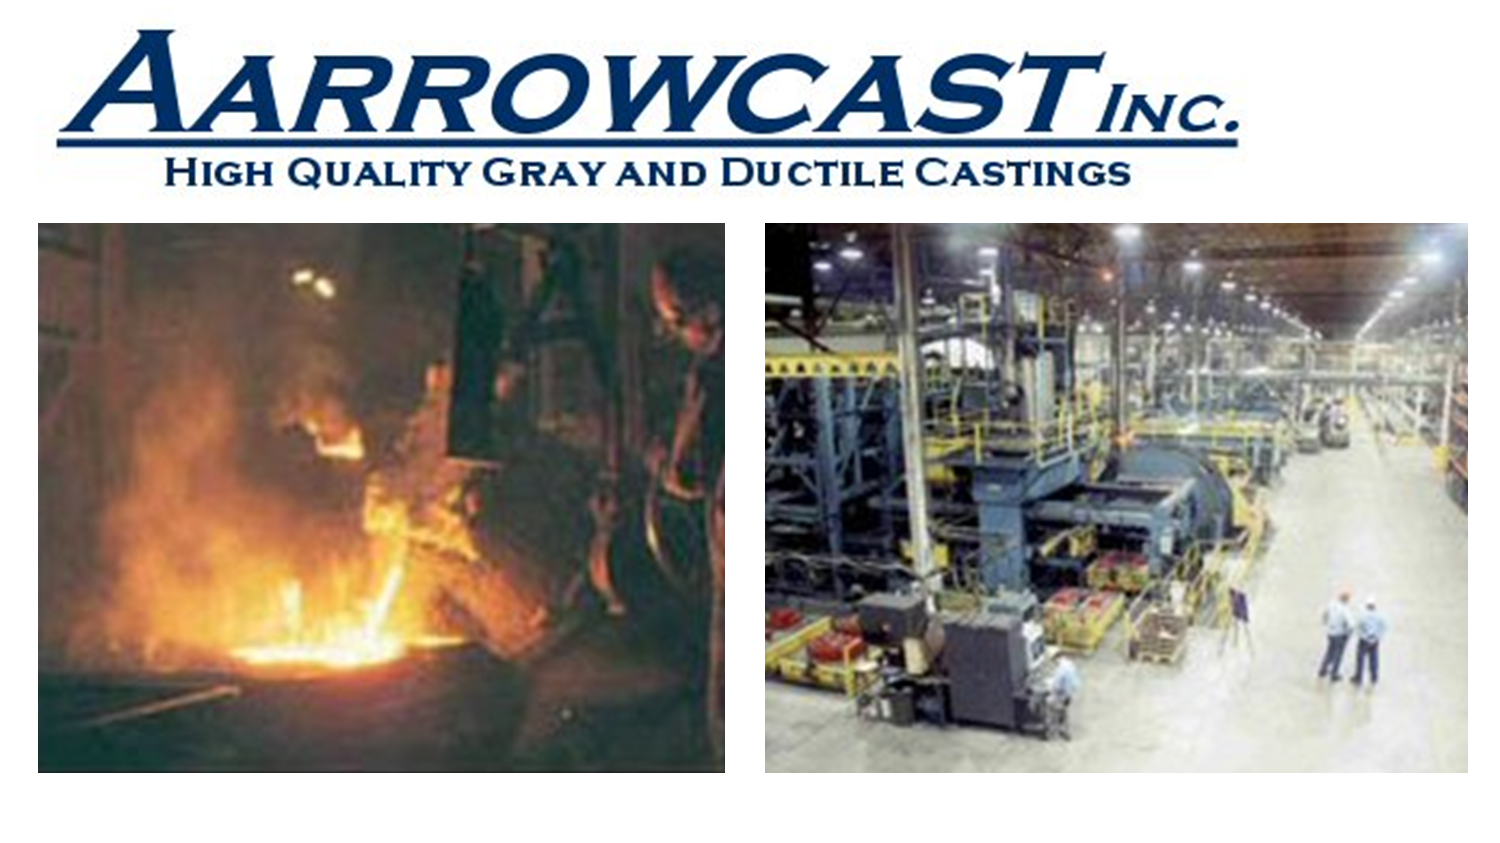 Industrial Opportunity Partners Acquires Aarrowcast